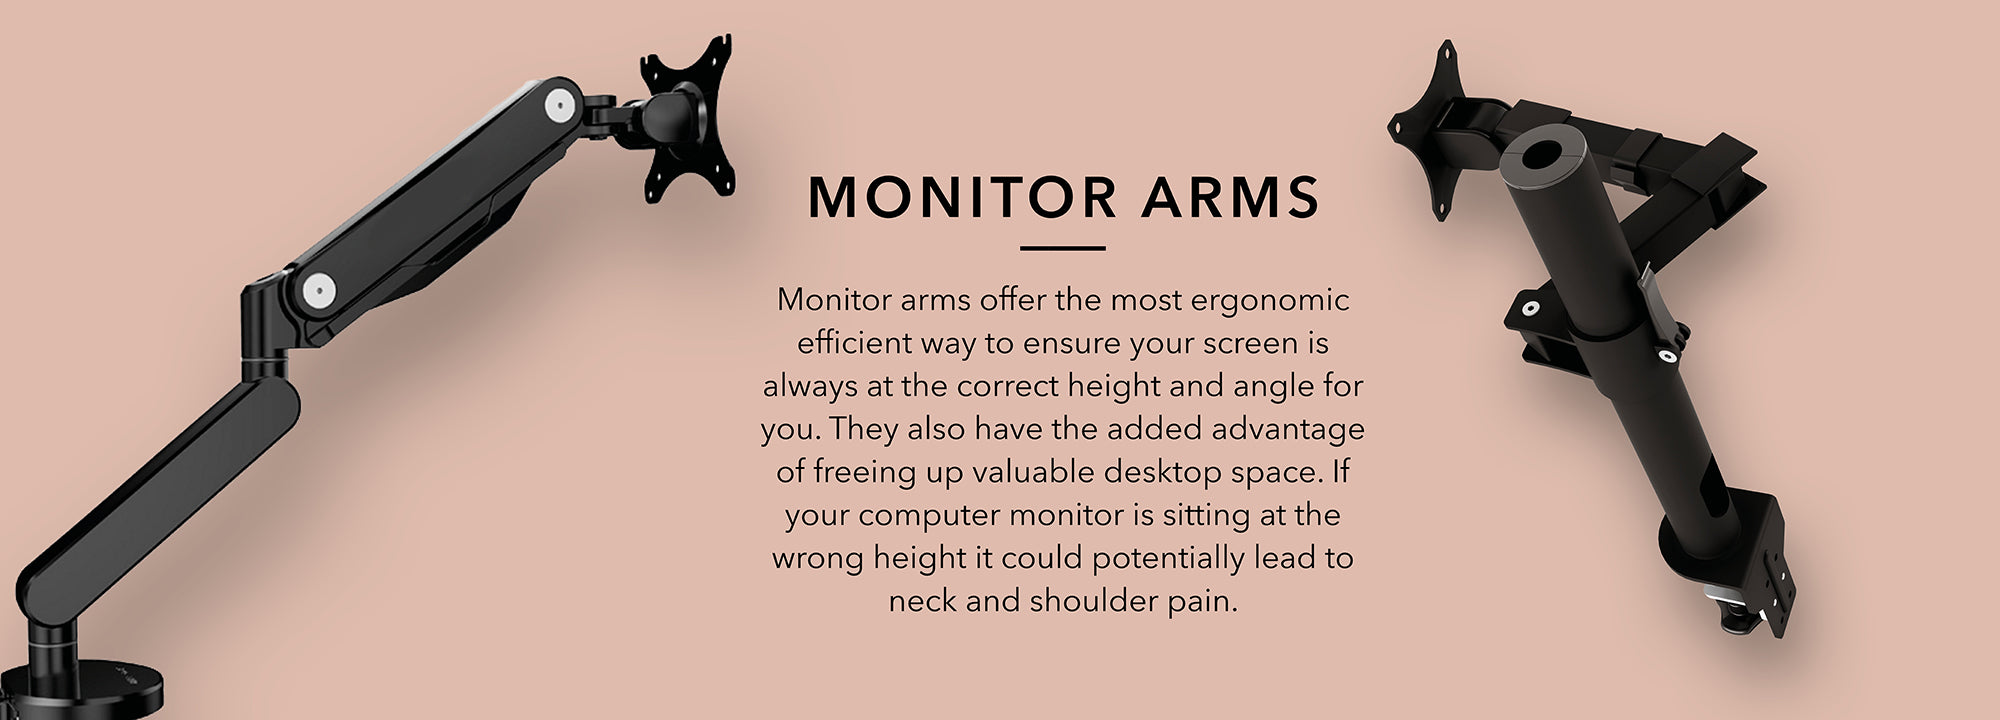 Monitor arms ergonomic efficient way to ensure your screen is always at the correct height